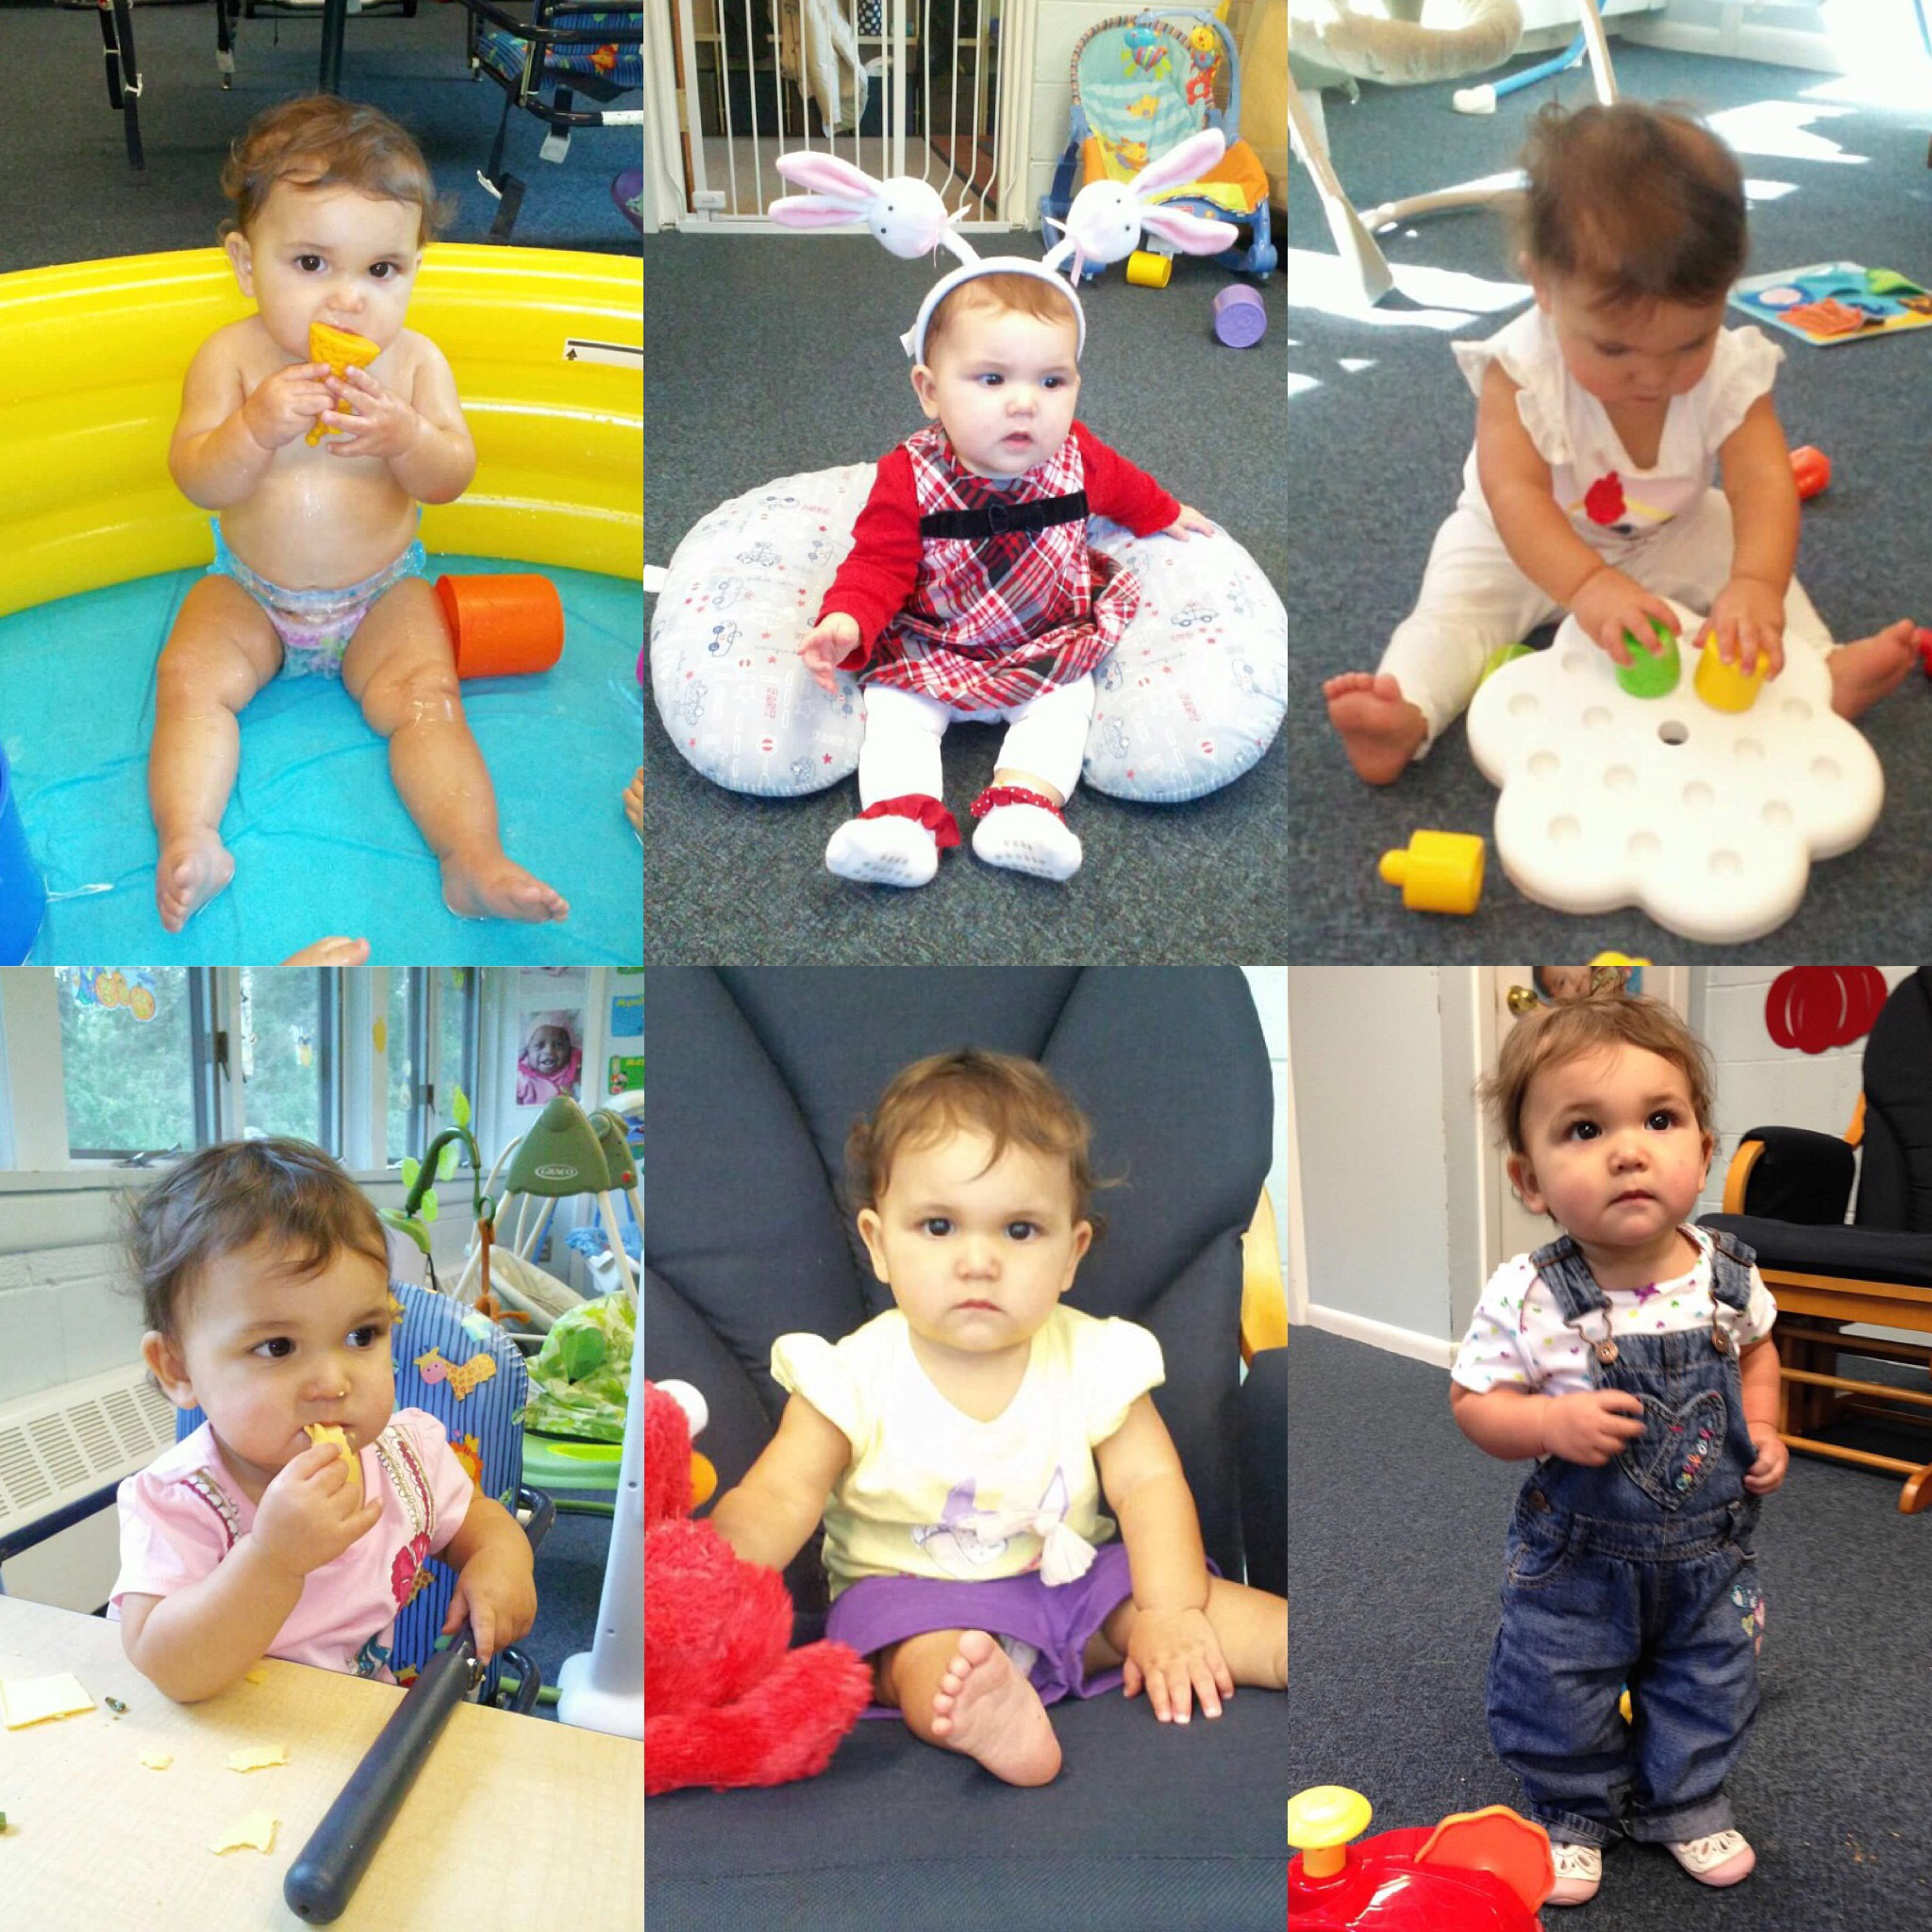 Top New Jersey lifestyle blog, House of Leo, honors the daycare mom and shares their thoughts on the difficult decision to make to go back to work